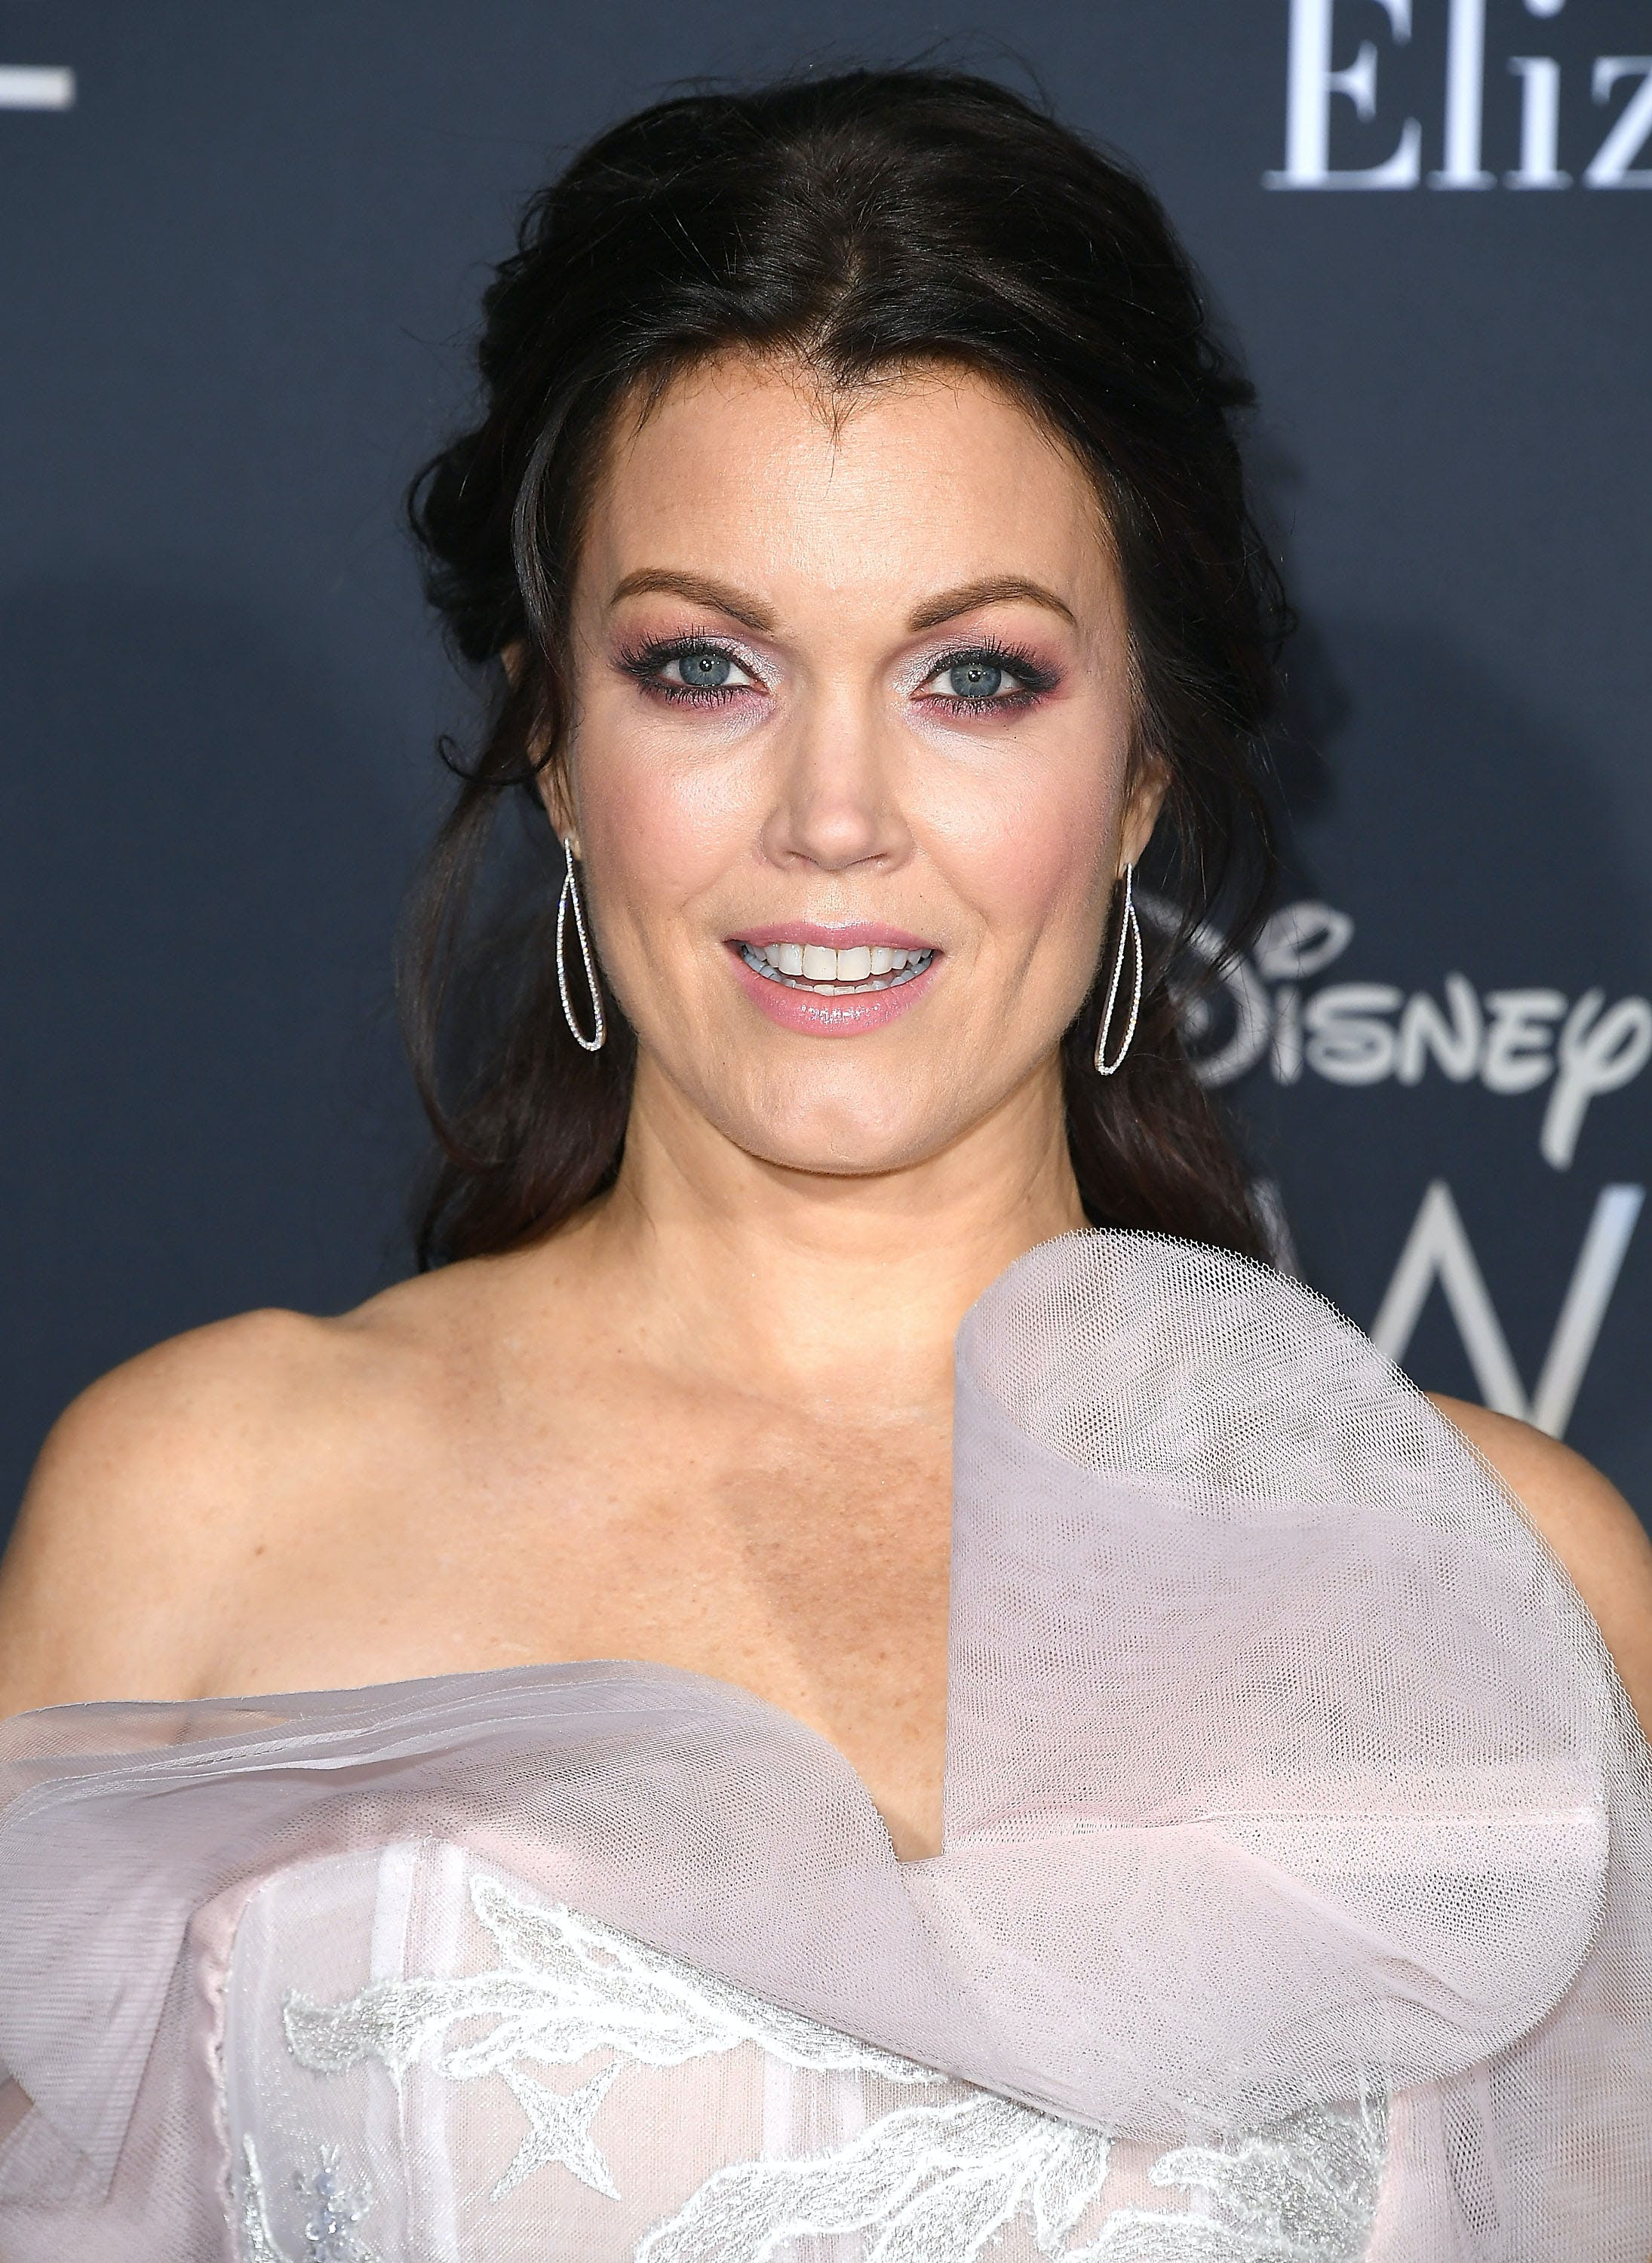 Bellamy Young at the premier of A Wrinkle In Time